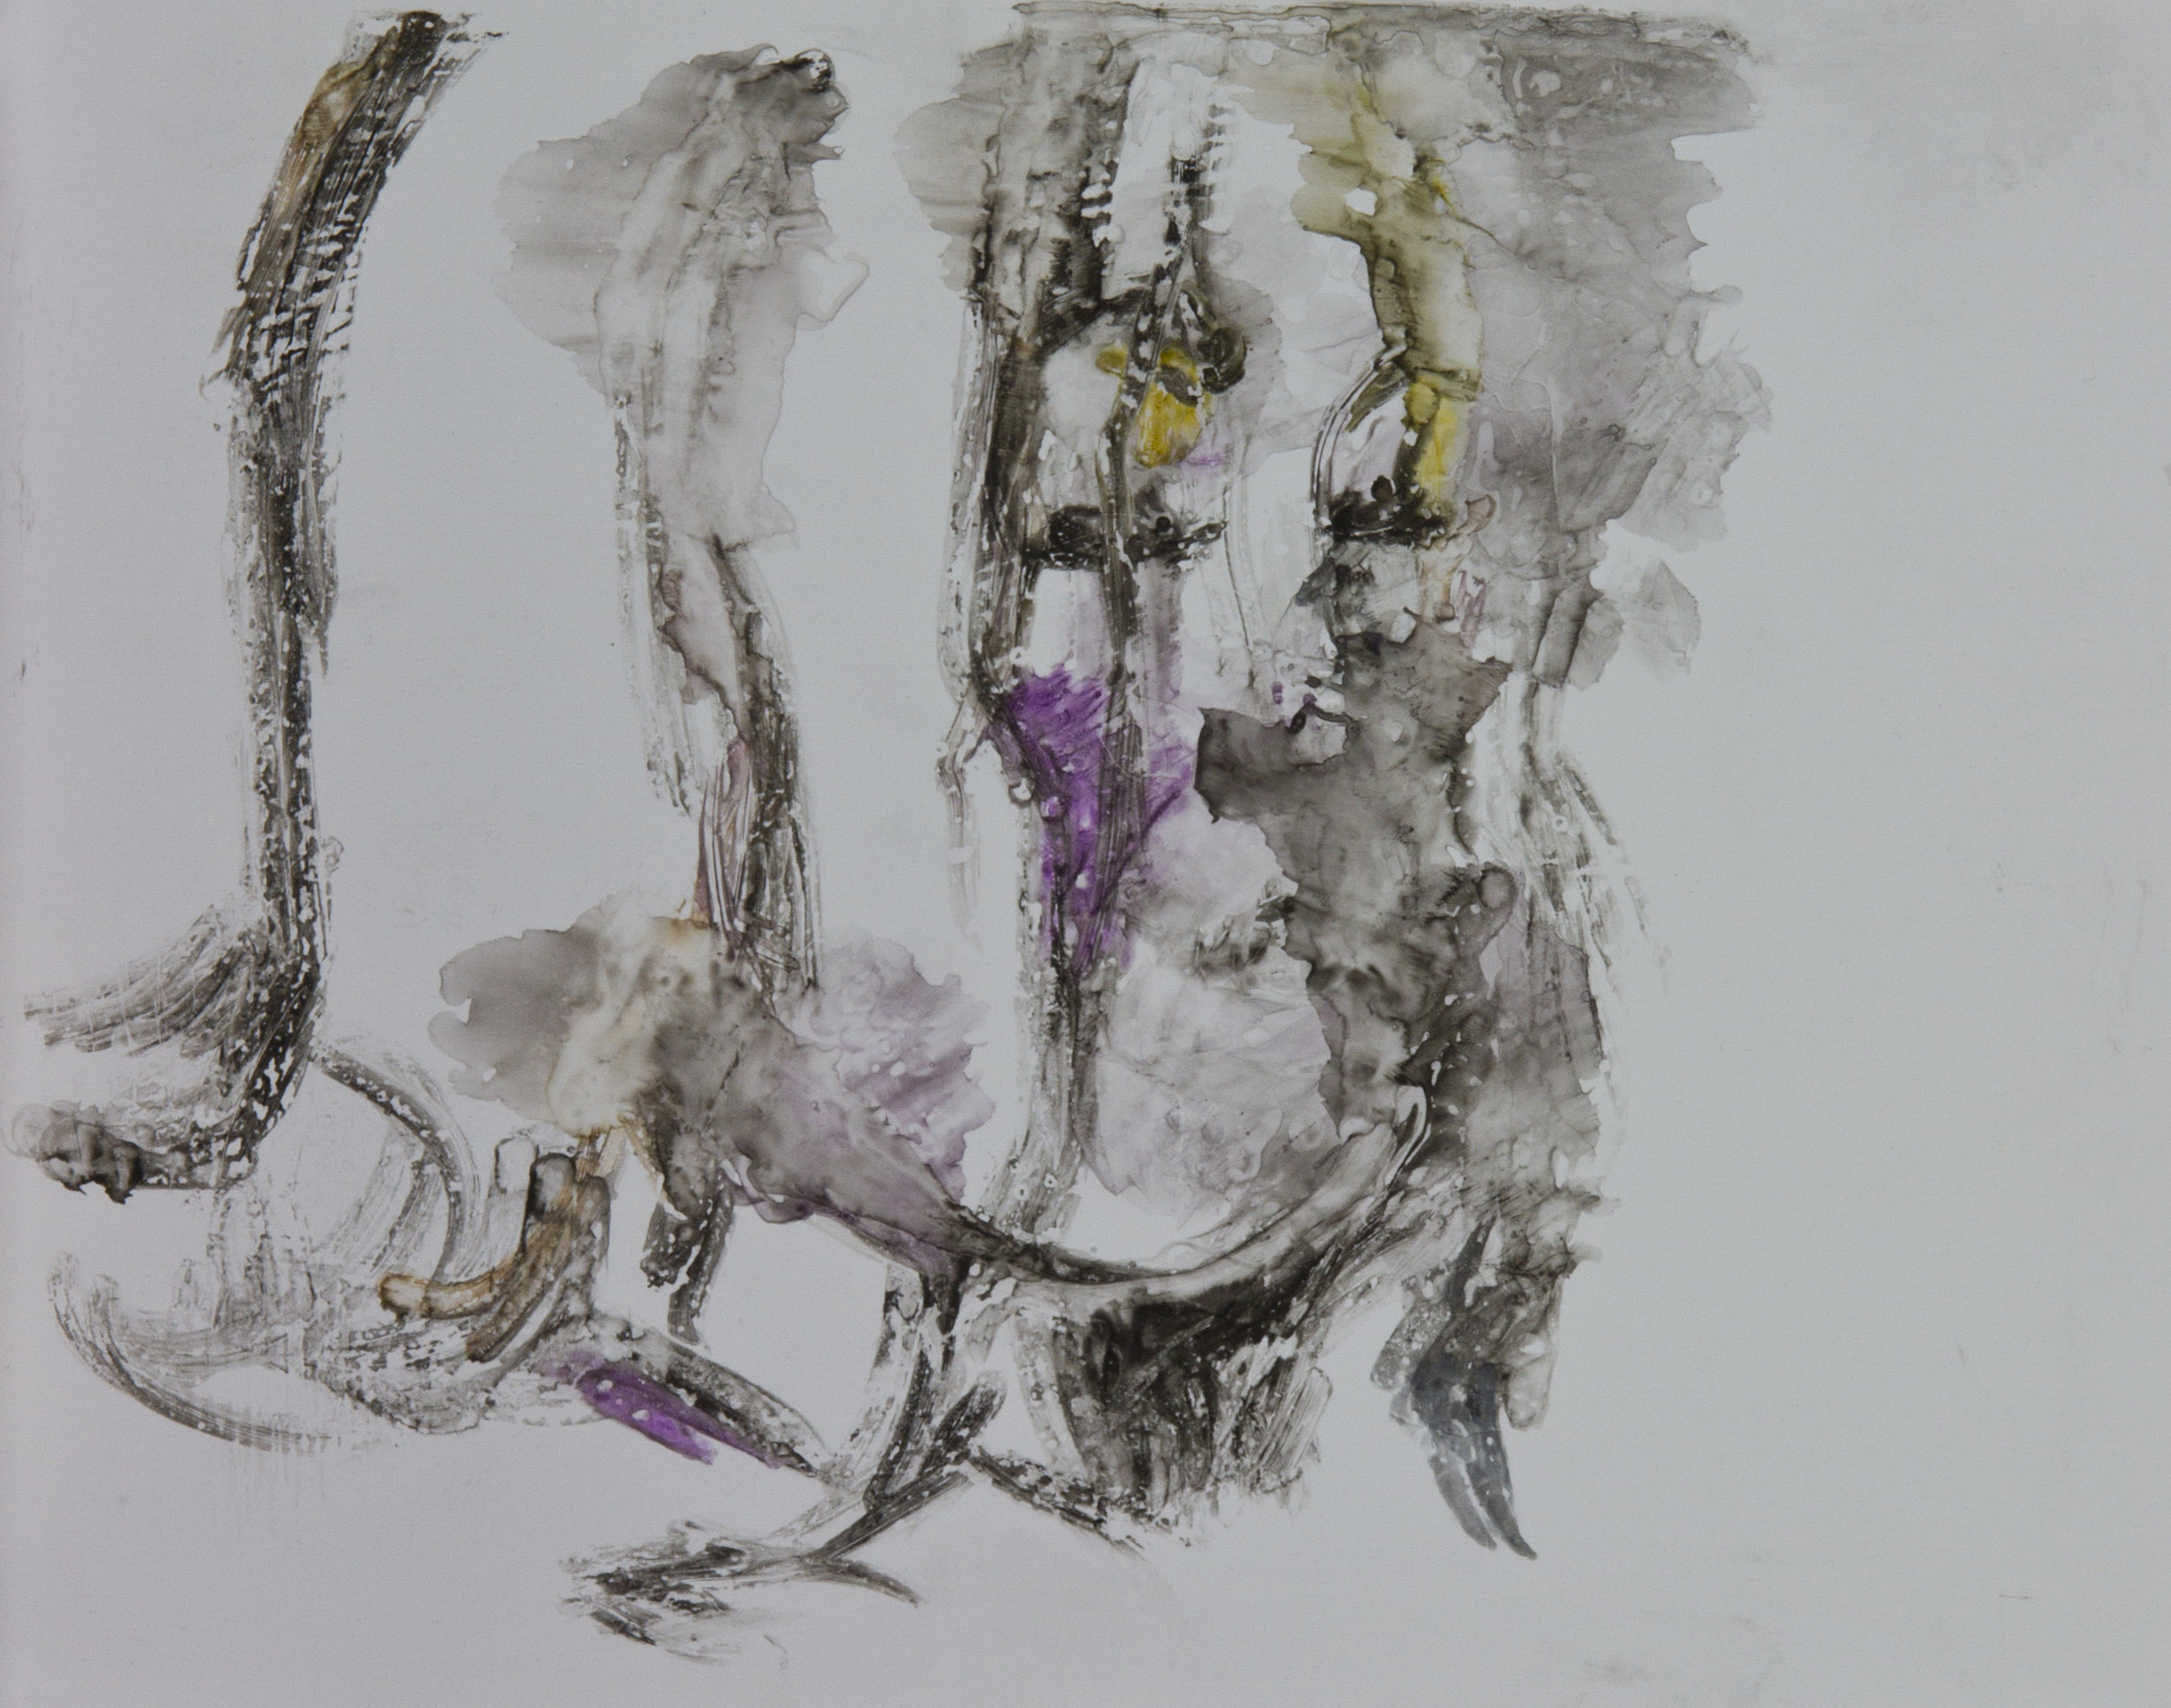 Acts 2, 2010, watercolor monotype on polypropylene, 11x14 inches